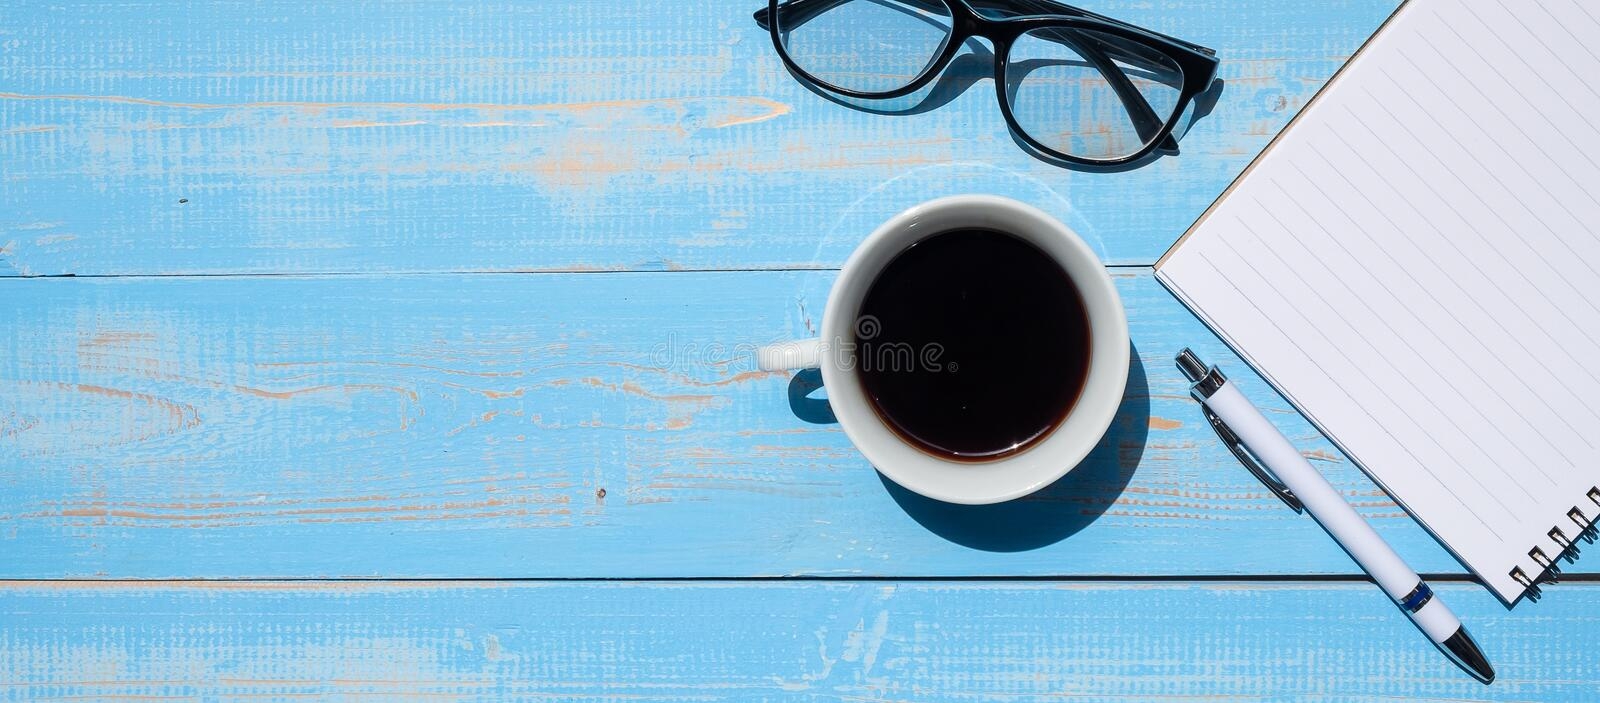 Cup of black coffee with office supplies; pen, notebook and eyes glasses on blue wooden table background. Top view with copy space royalty free stock photos